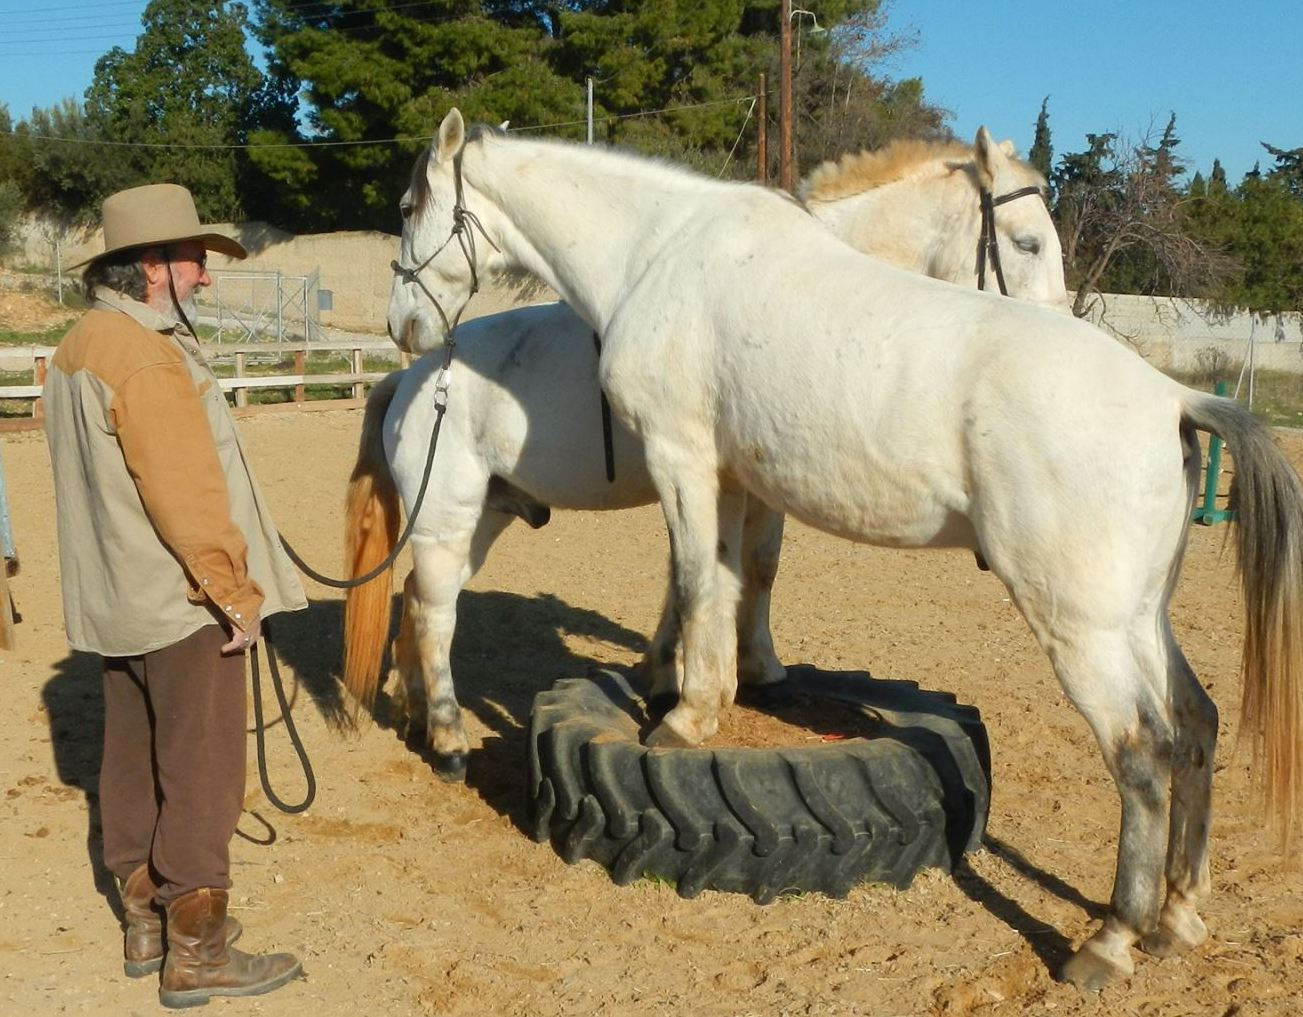 Steve Vergis, Horse trainer phone  6946665014